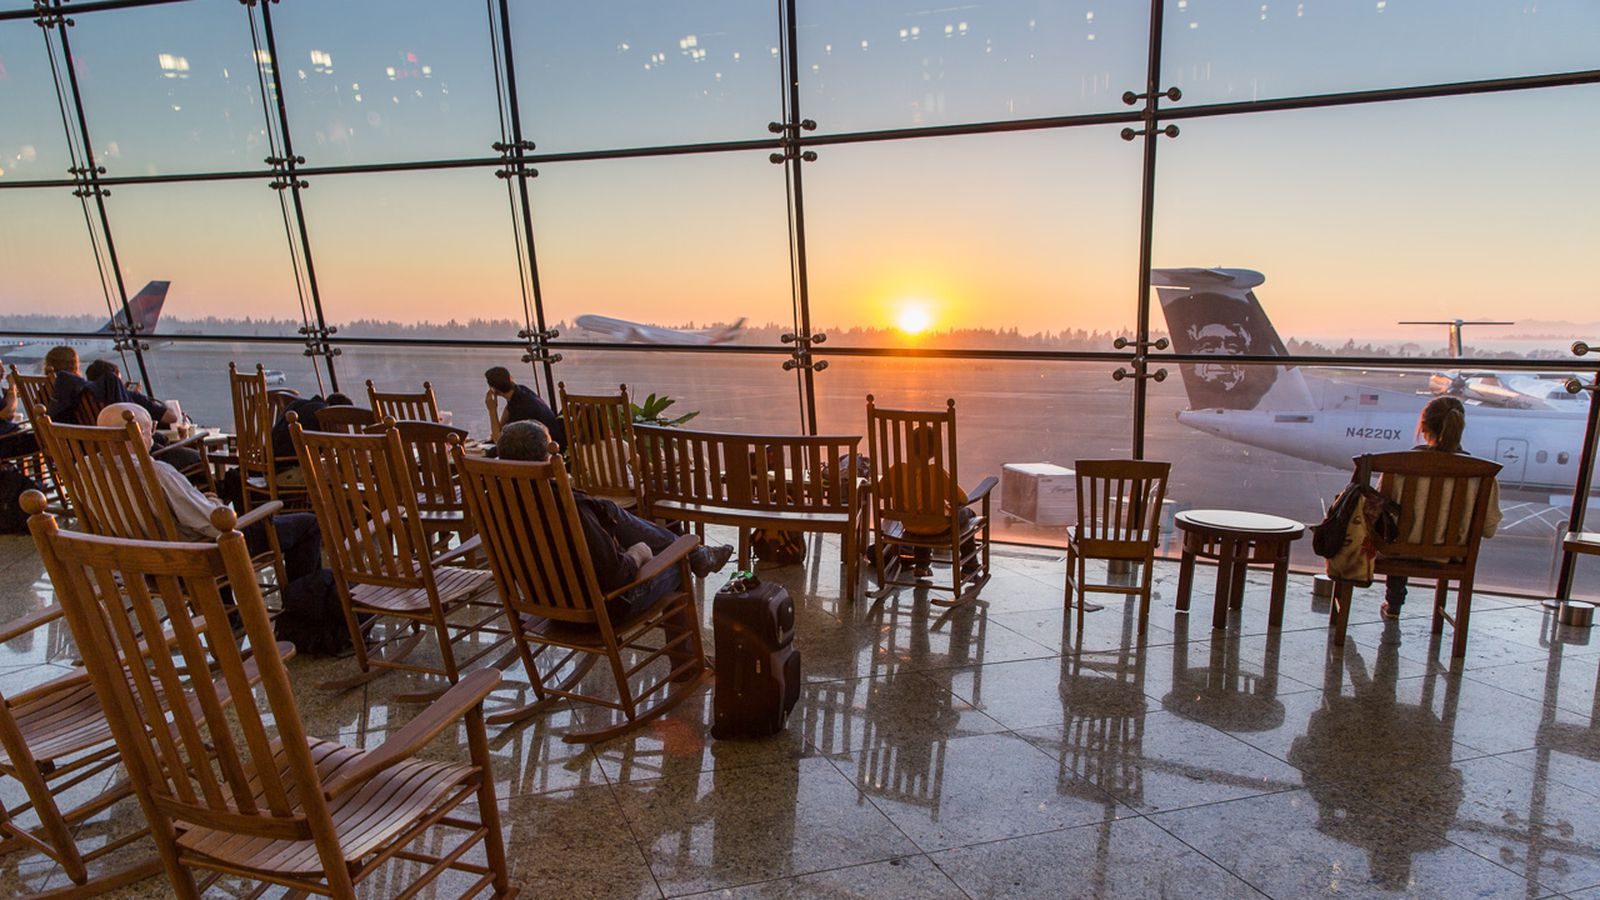 Here S Why So Many Airports Have Rocking Chairs The Verge